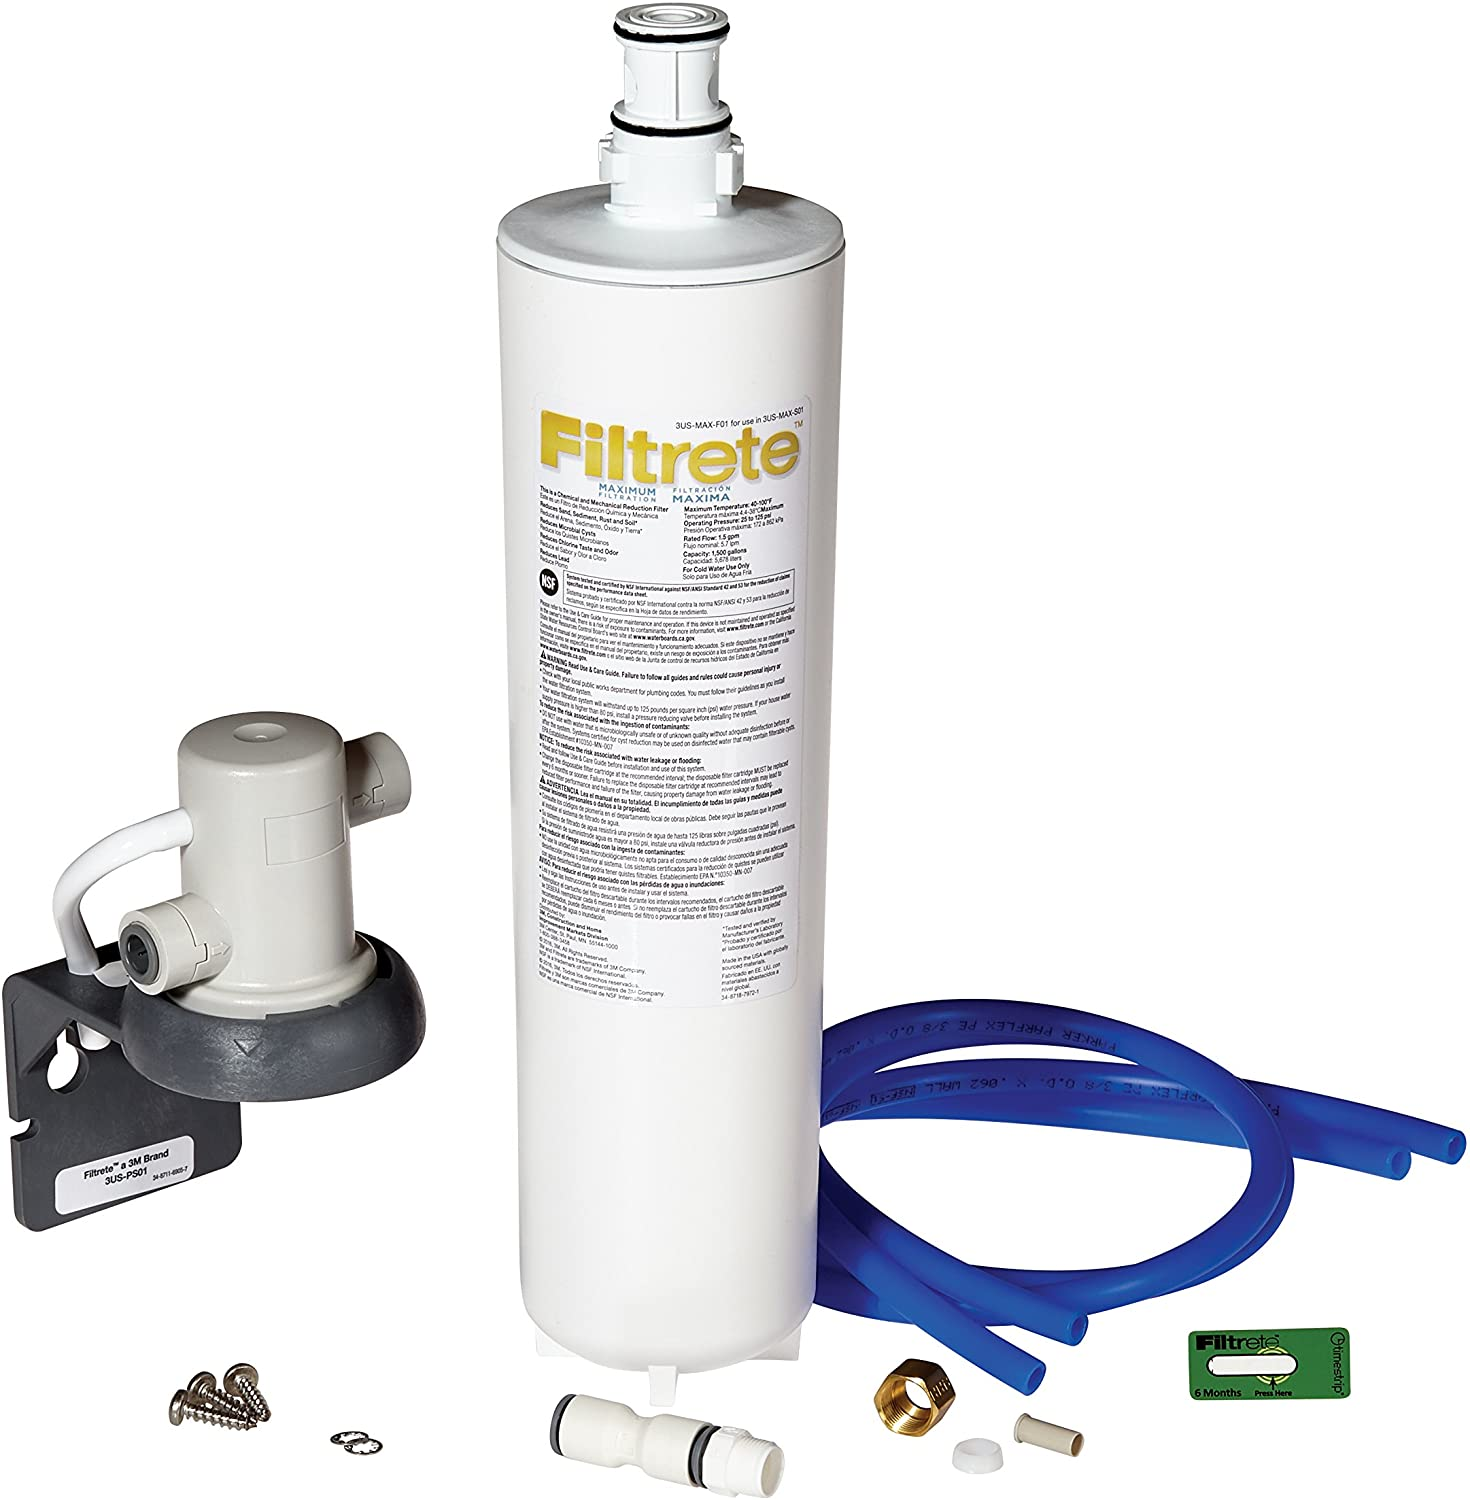 Filtrete 3US-MAX-S01 Under Sink Water Filter